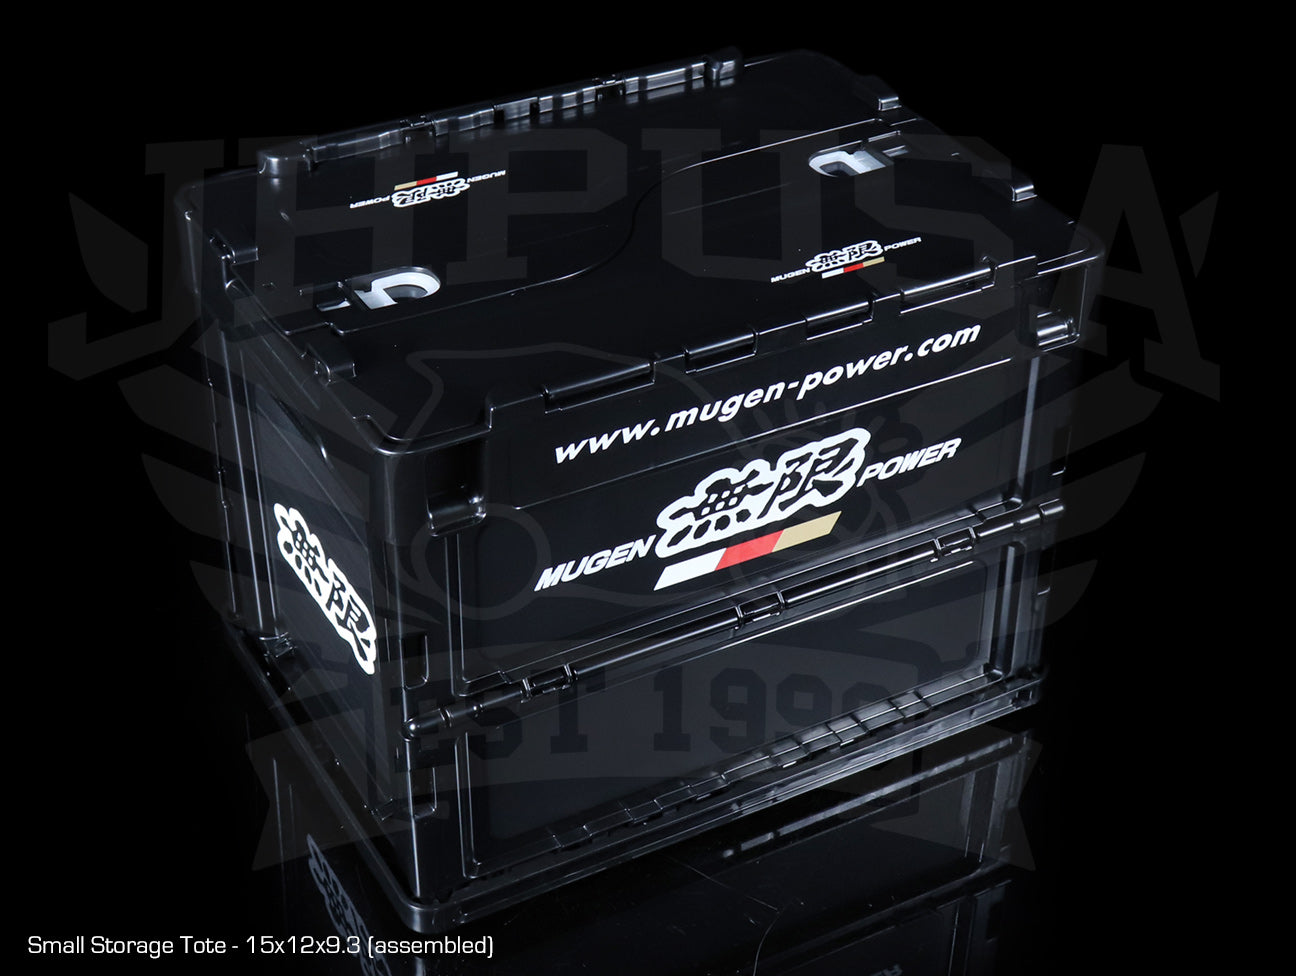 Mugen Folding Storage Container - Small